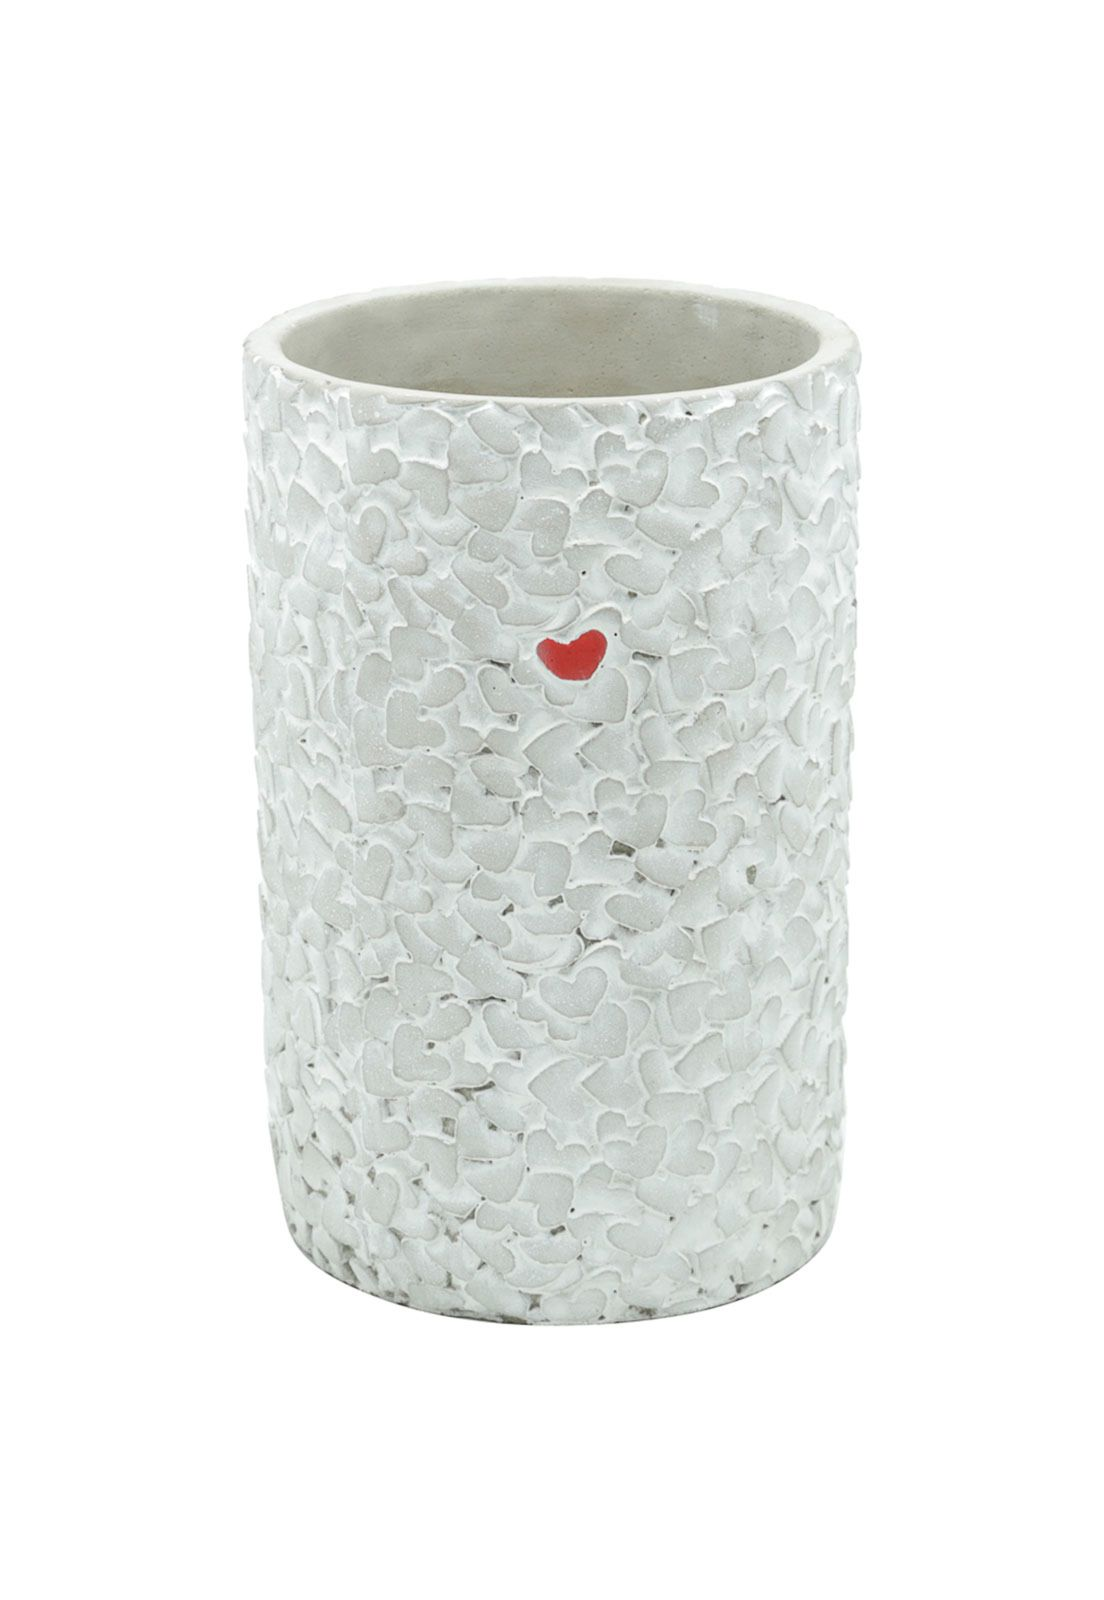 VASO CONCRETO LONG EMBOSSED LITTLE HEART CINZA 14X14X21,5cm